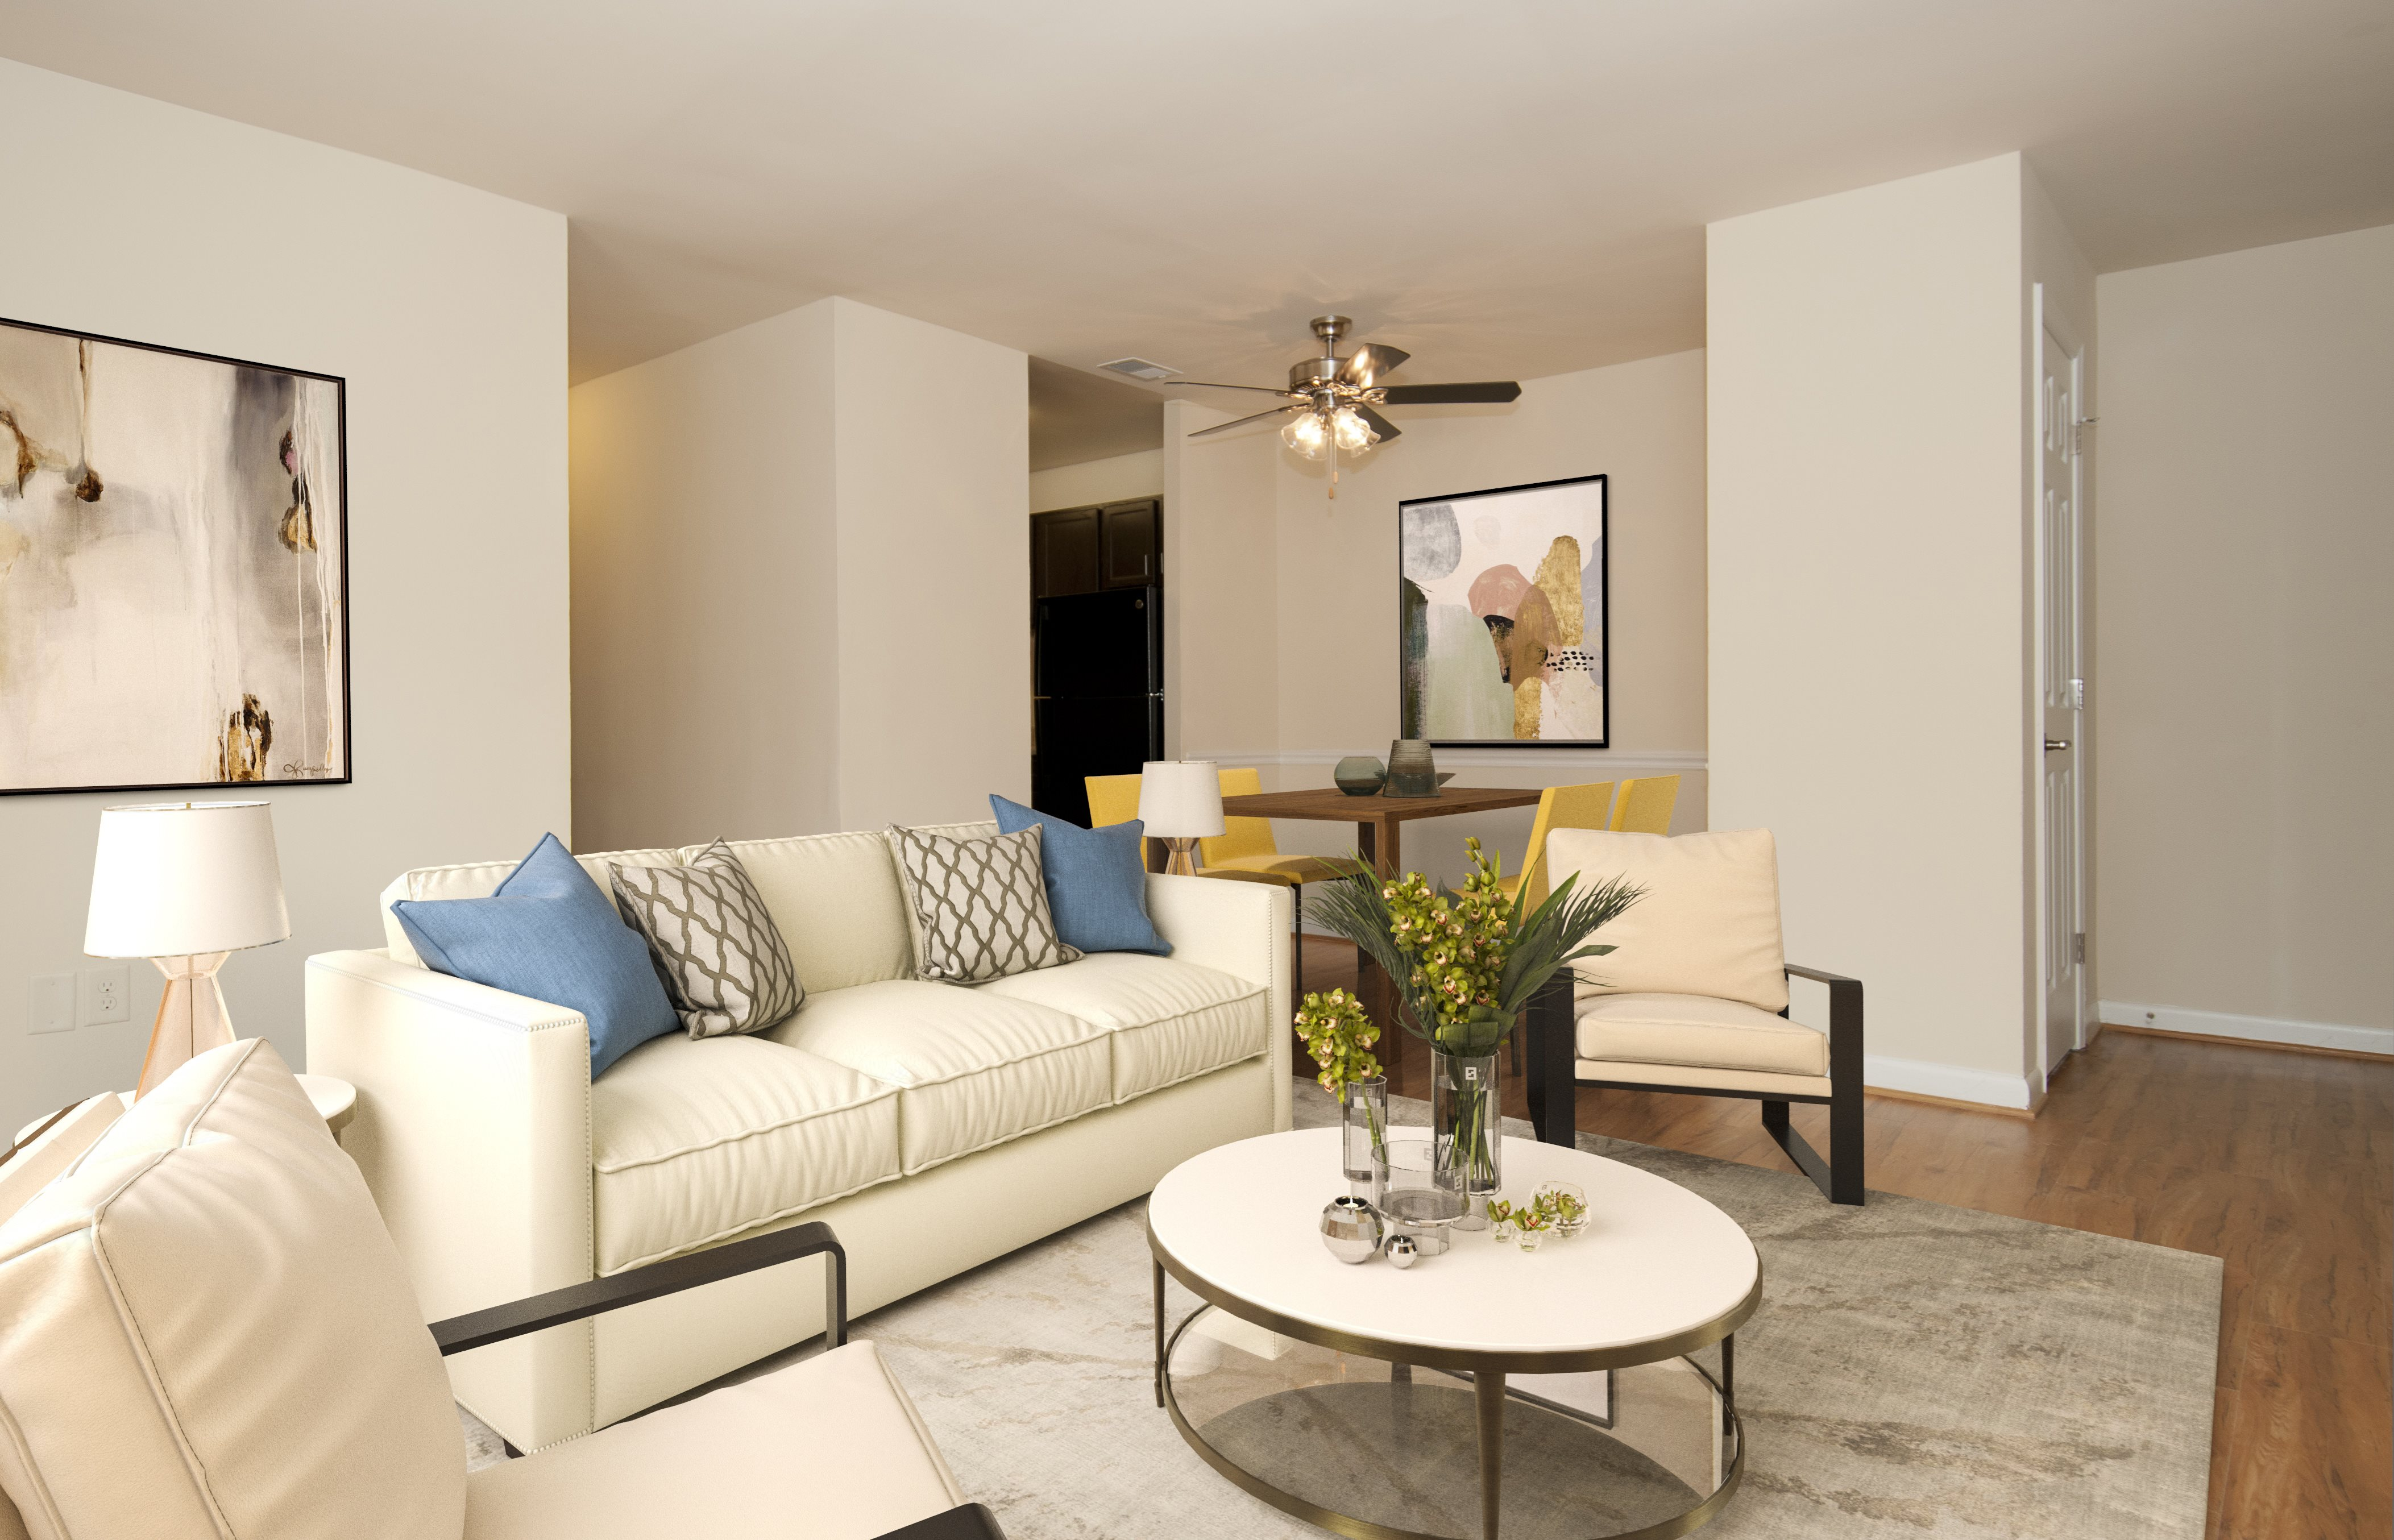 Living room rendering with white sofa and blue and and yellow accents